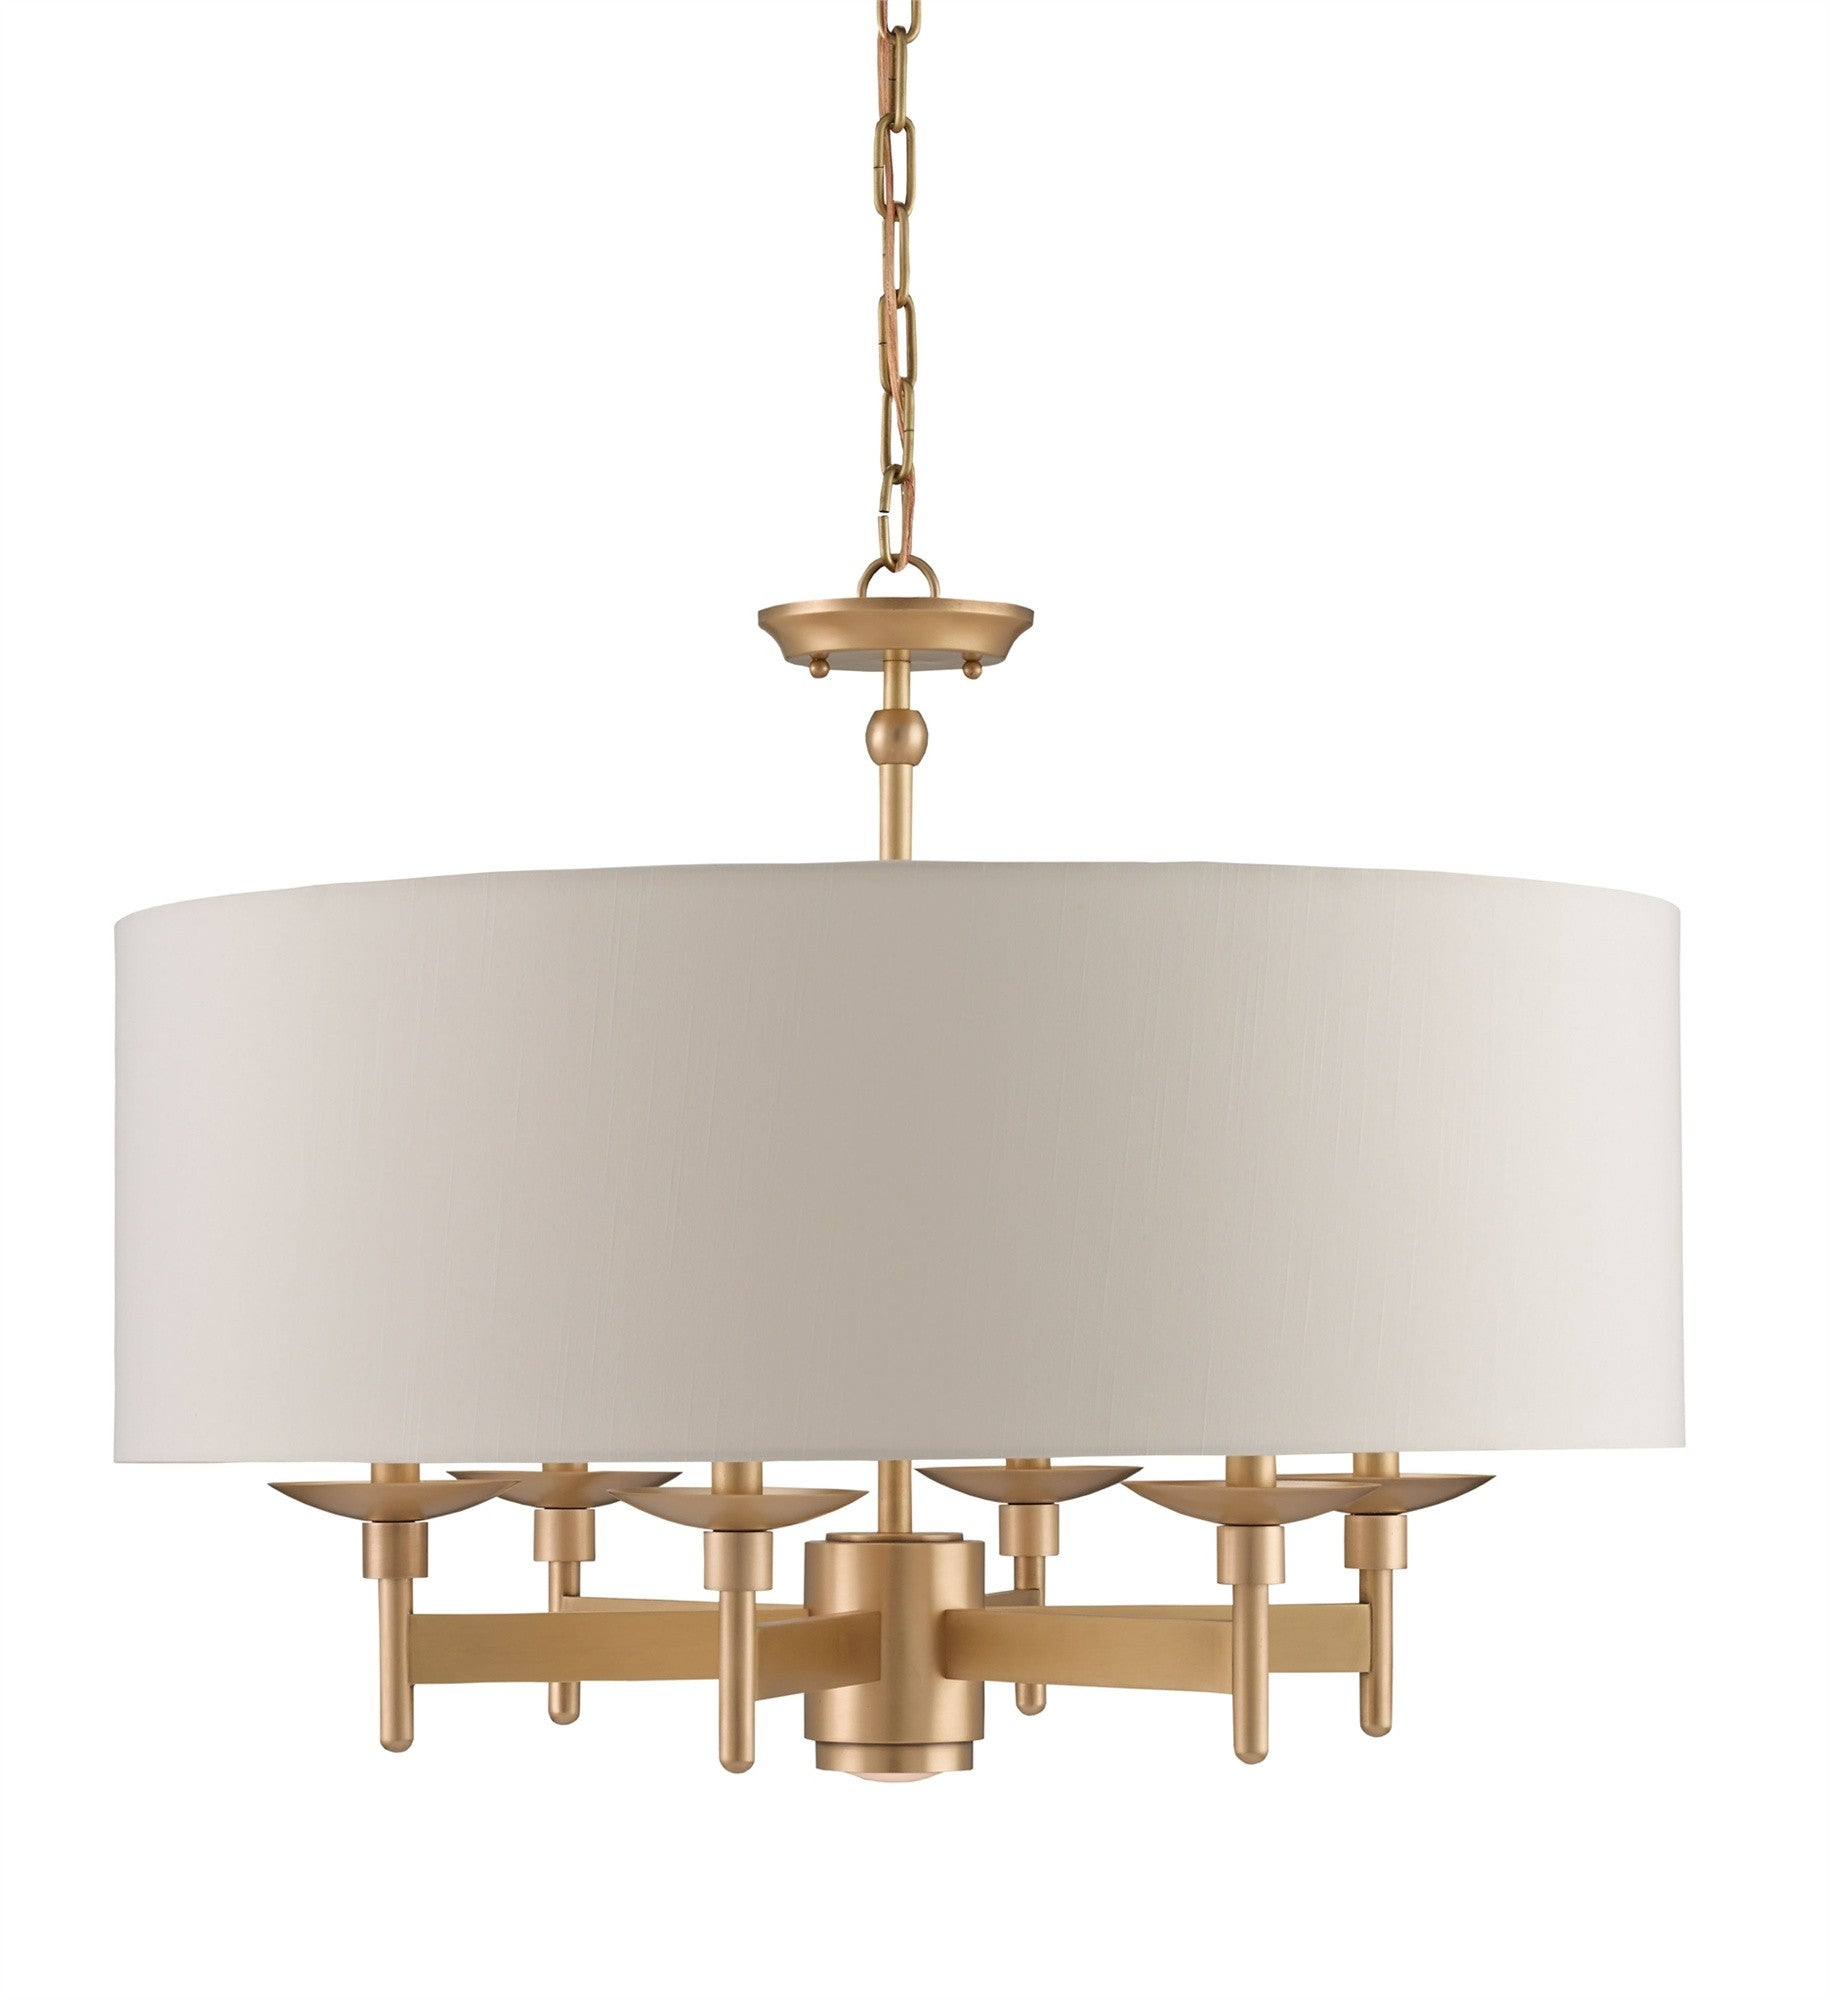 Currey And Company Phone Number: Bering Chandelier Design By Currey & Company